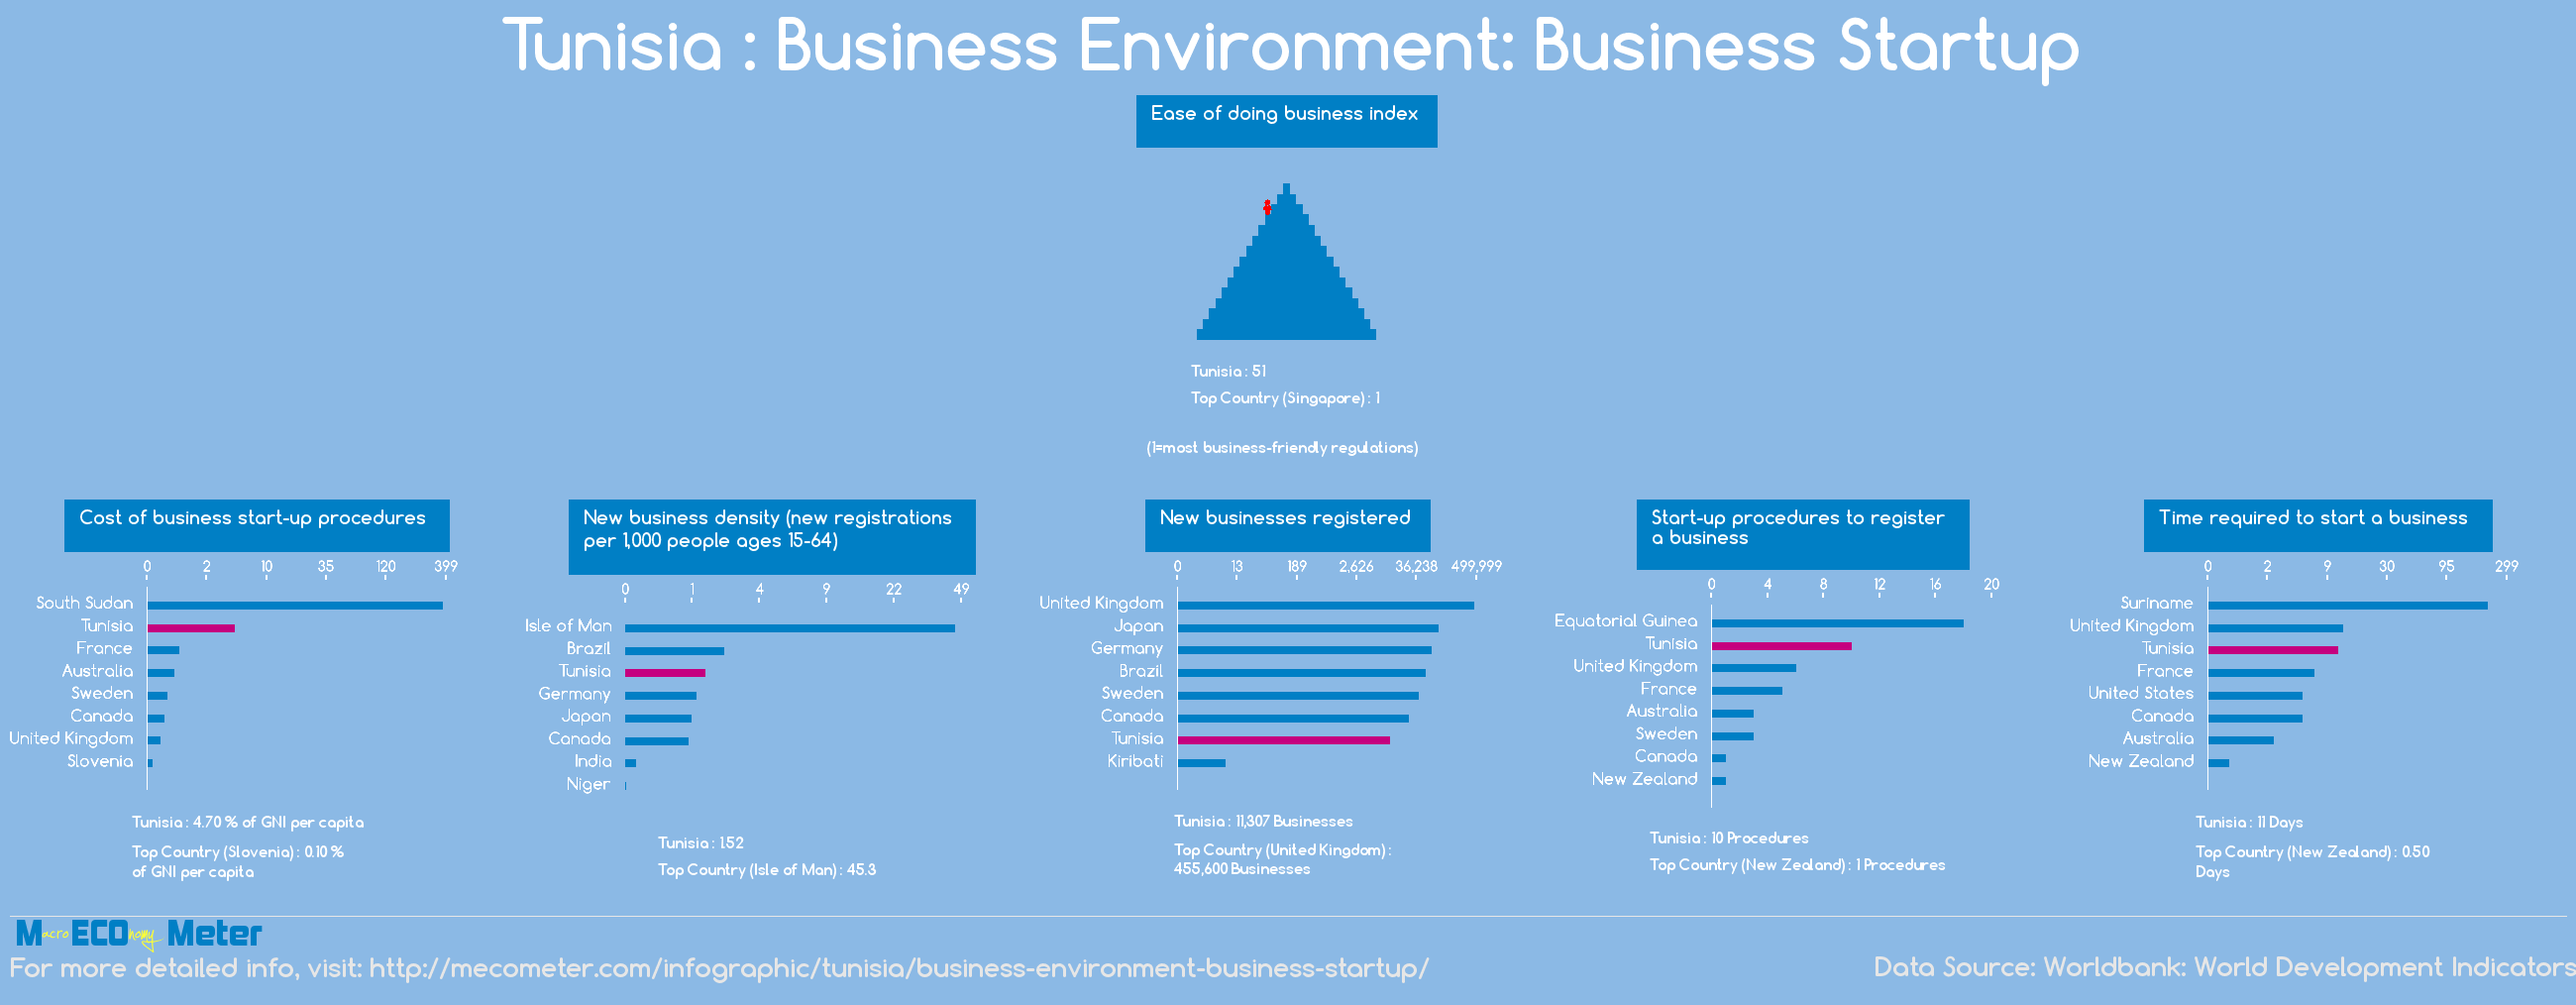 Tunisia : Business Environment: Business Startup